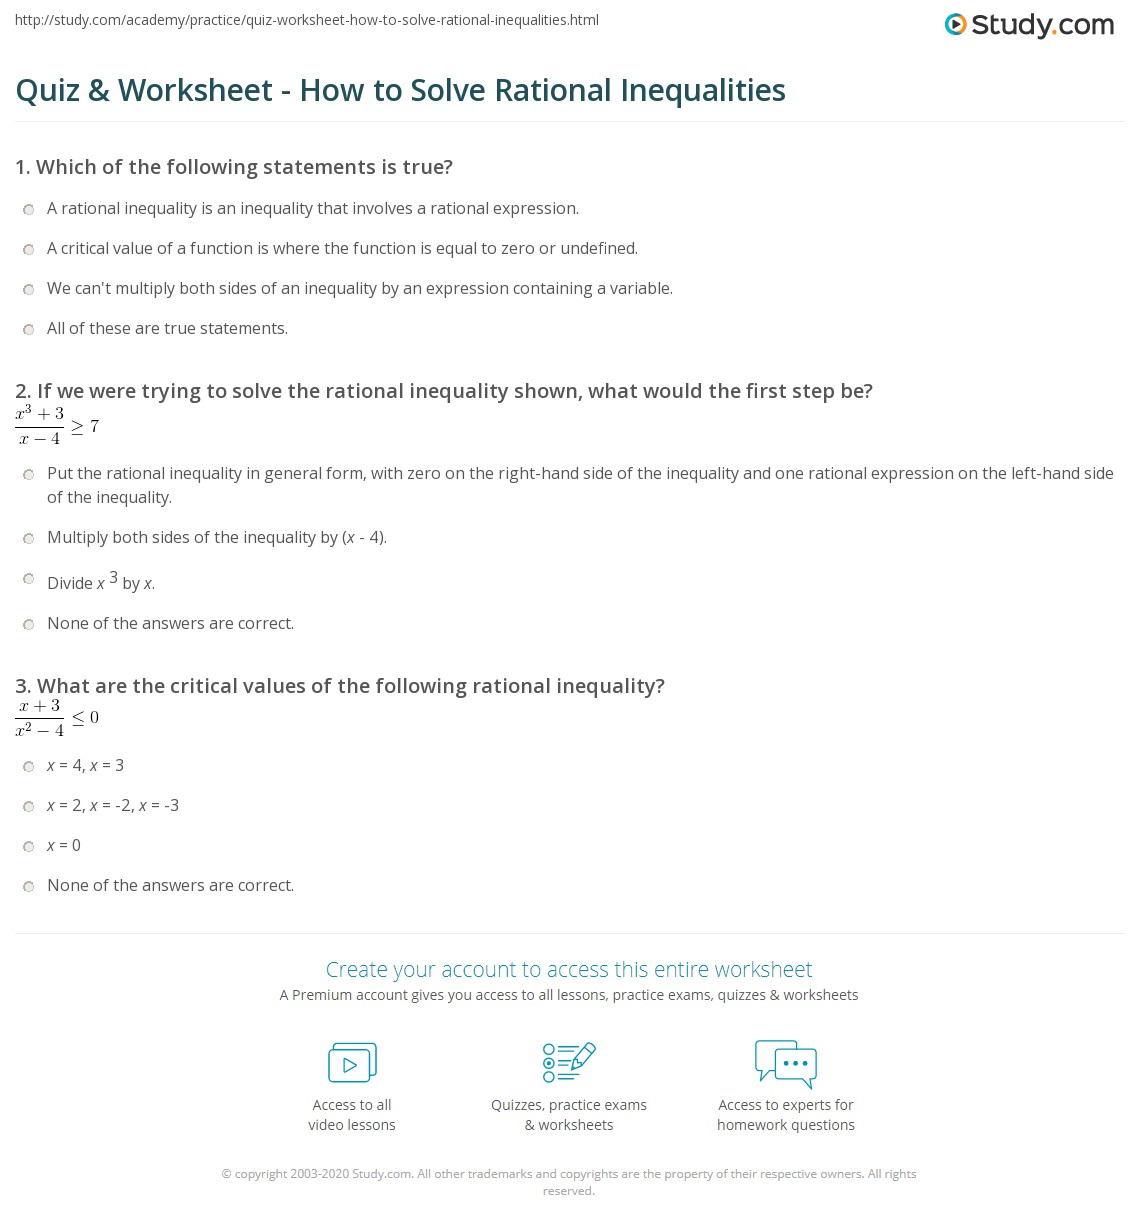 math worksheet : quiz  worksheet  how to solve rational inequalities  study  : Fraction Inequalities Worksheet